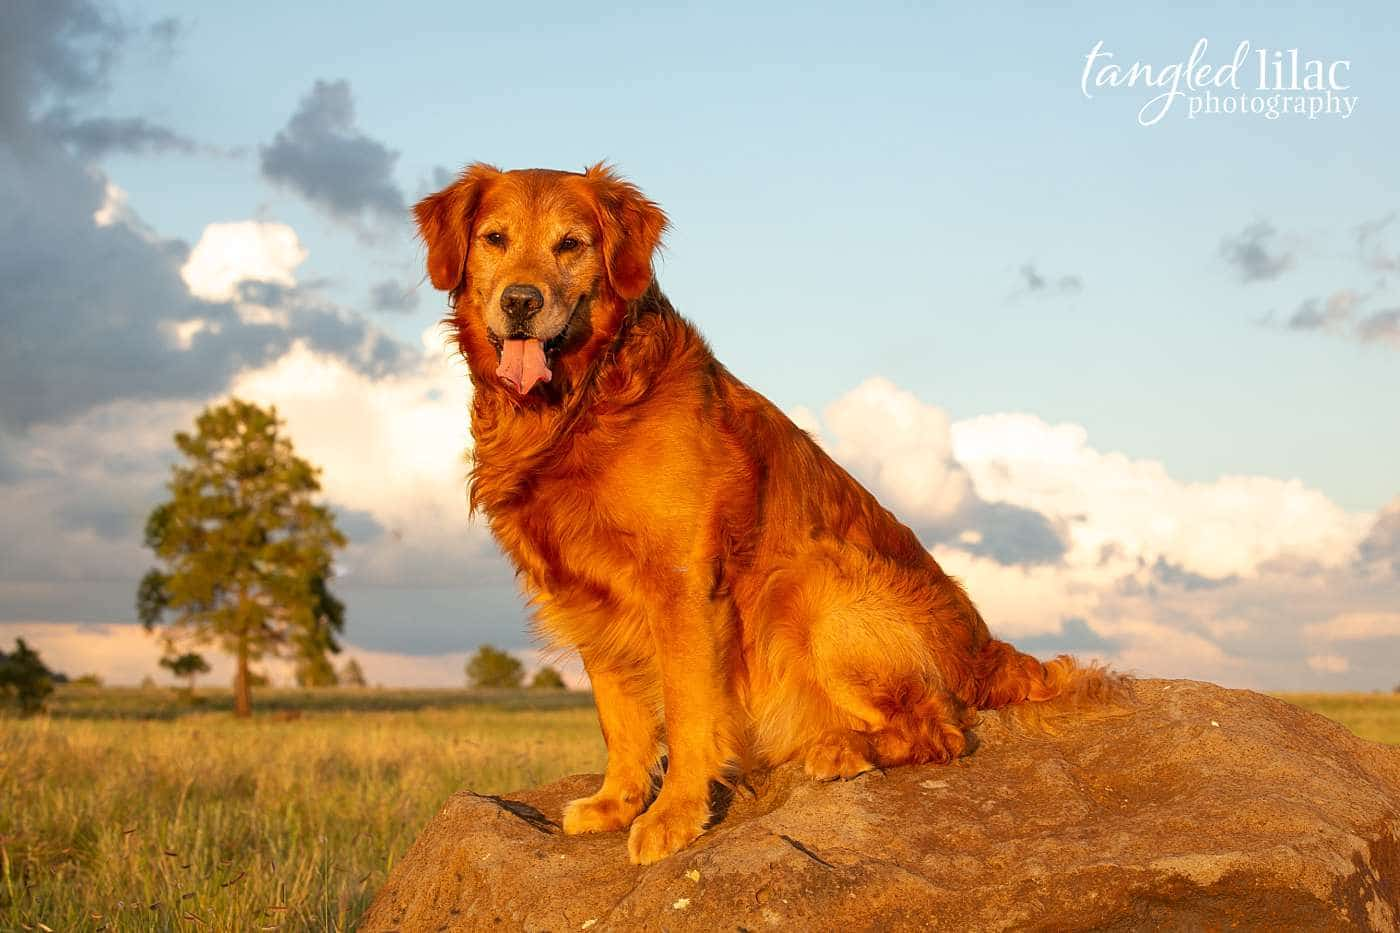 Dog during sunset sitting on a boulder and looking into the sun at the golden hour